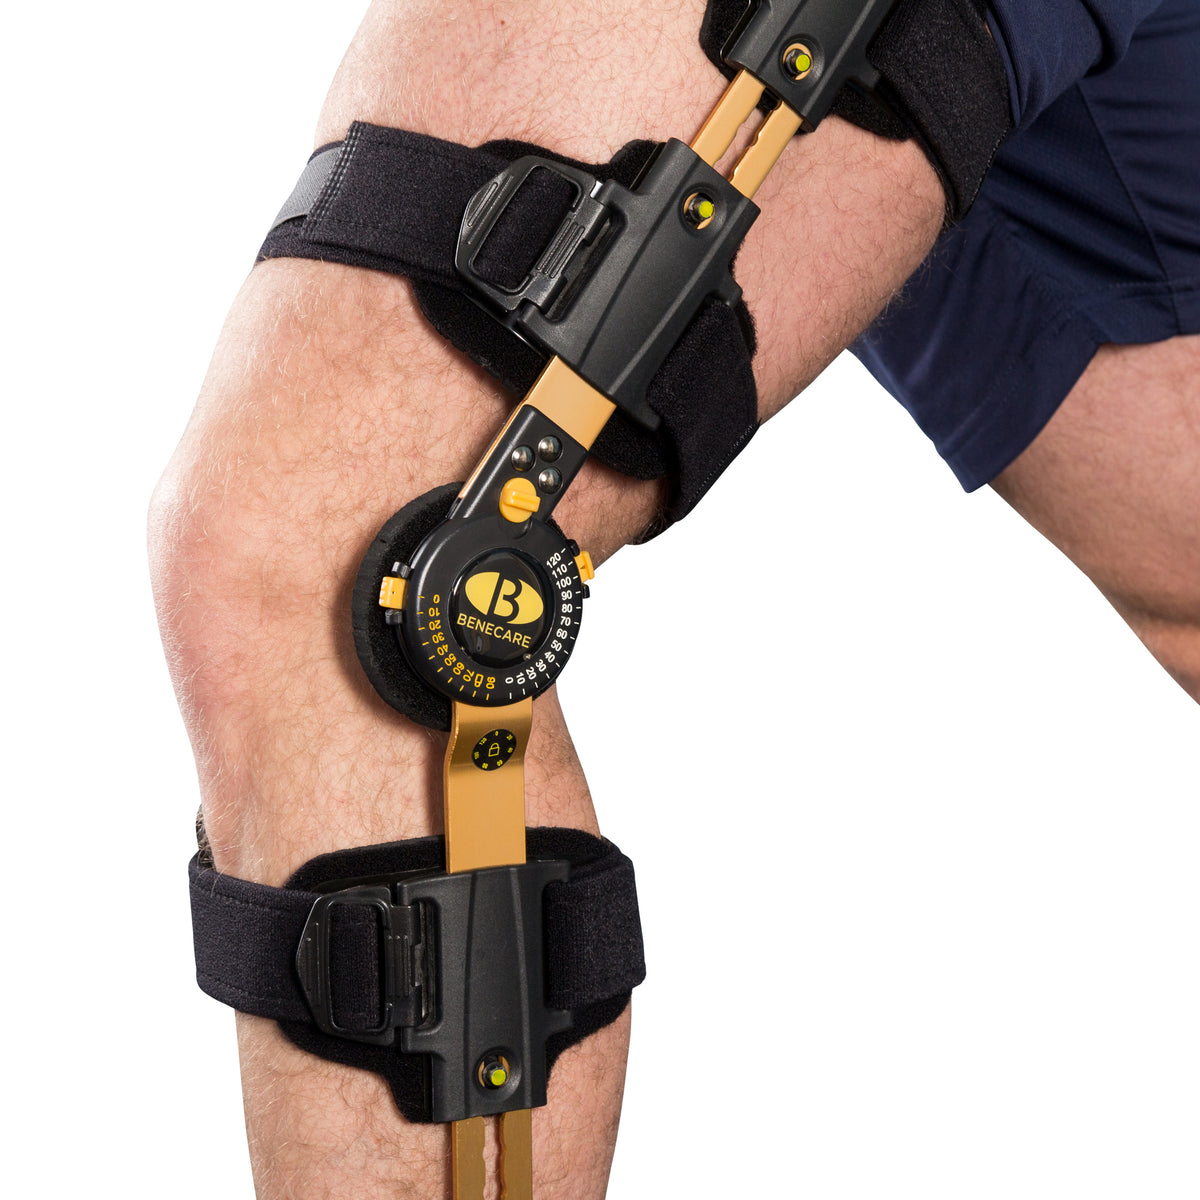 Supports & Braces: Knee